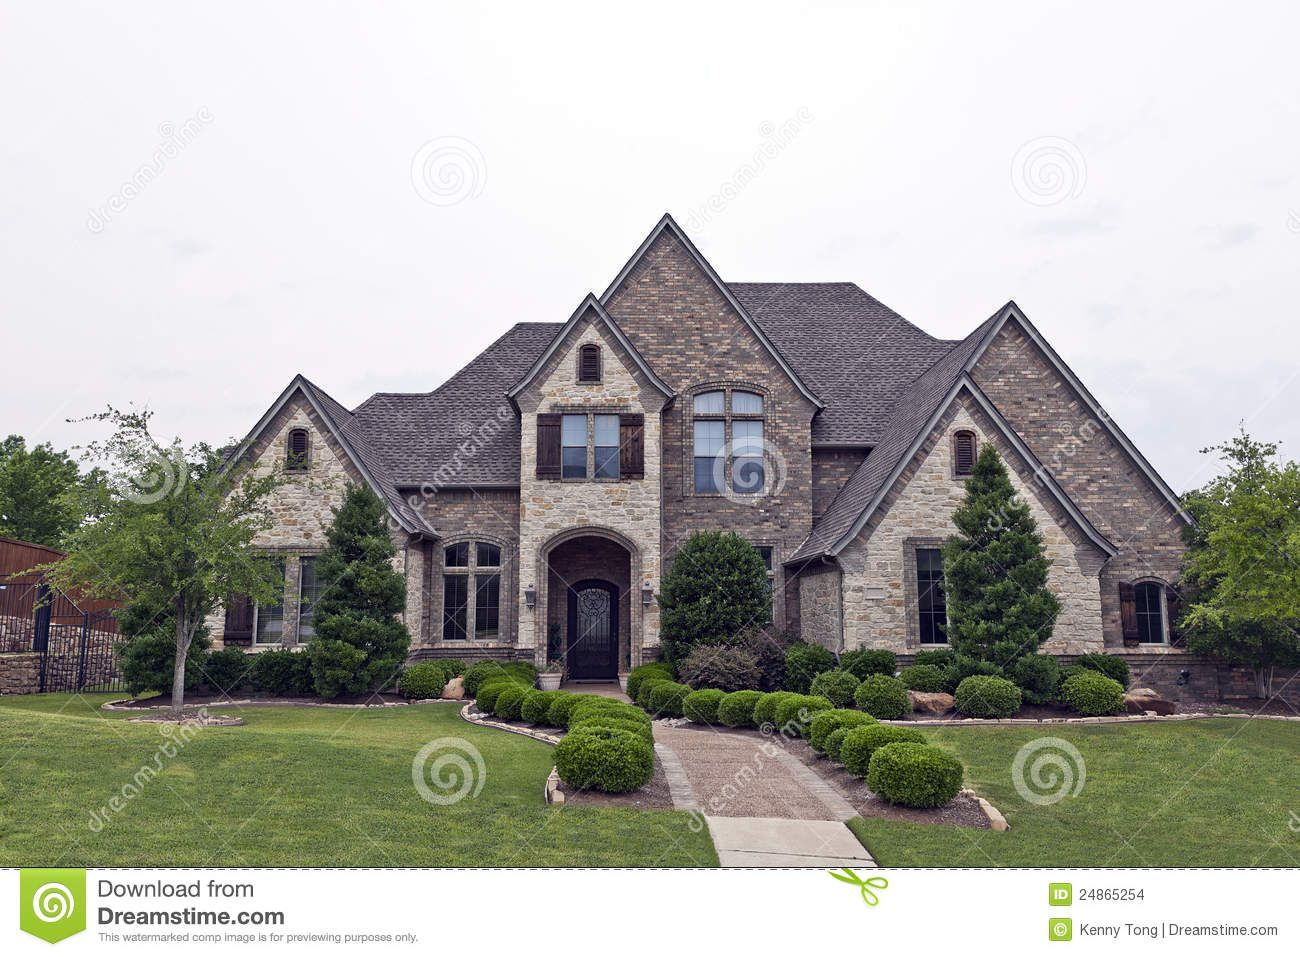 Rock and stone homes beautiful two story luxury brick for Brick house designs